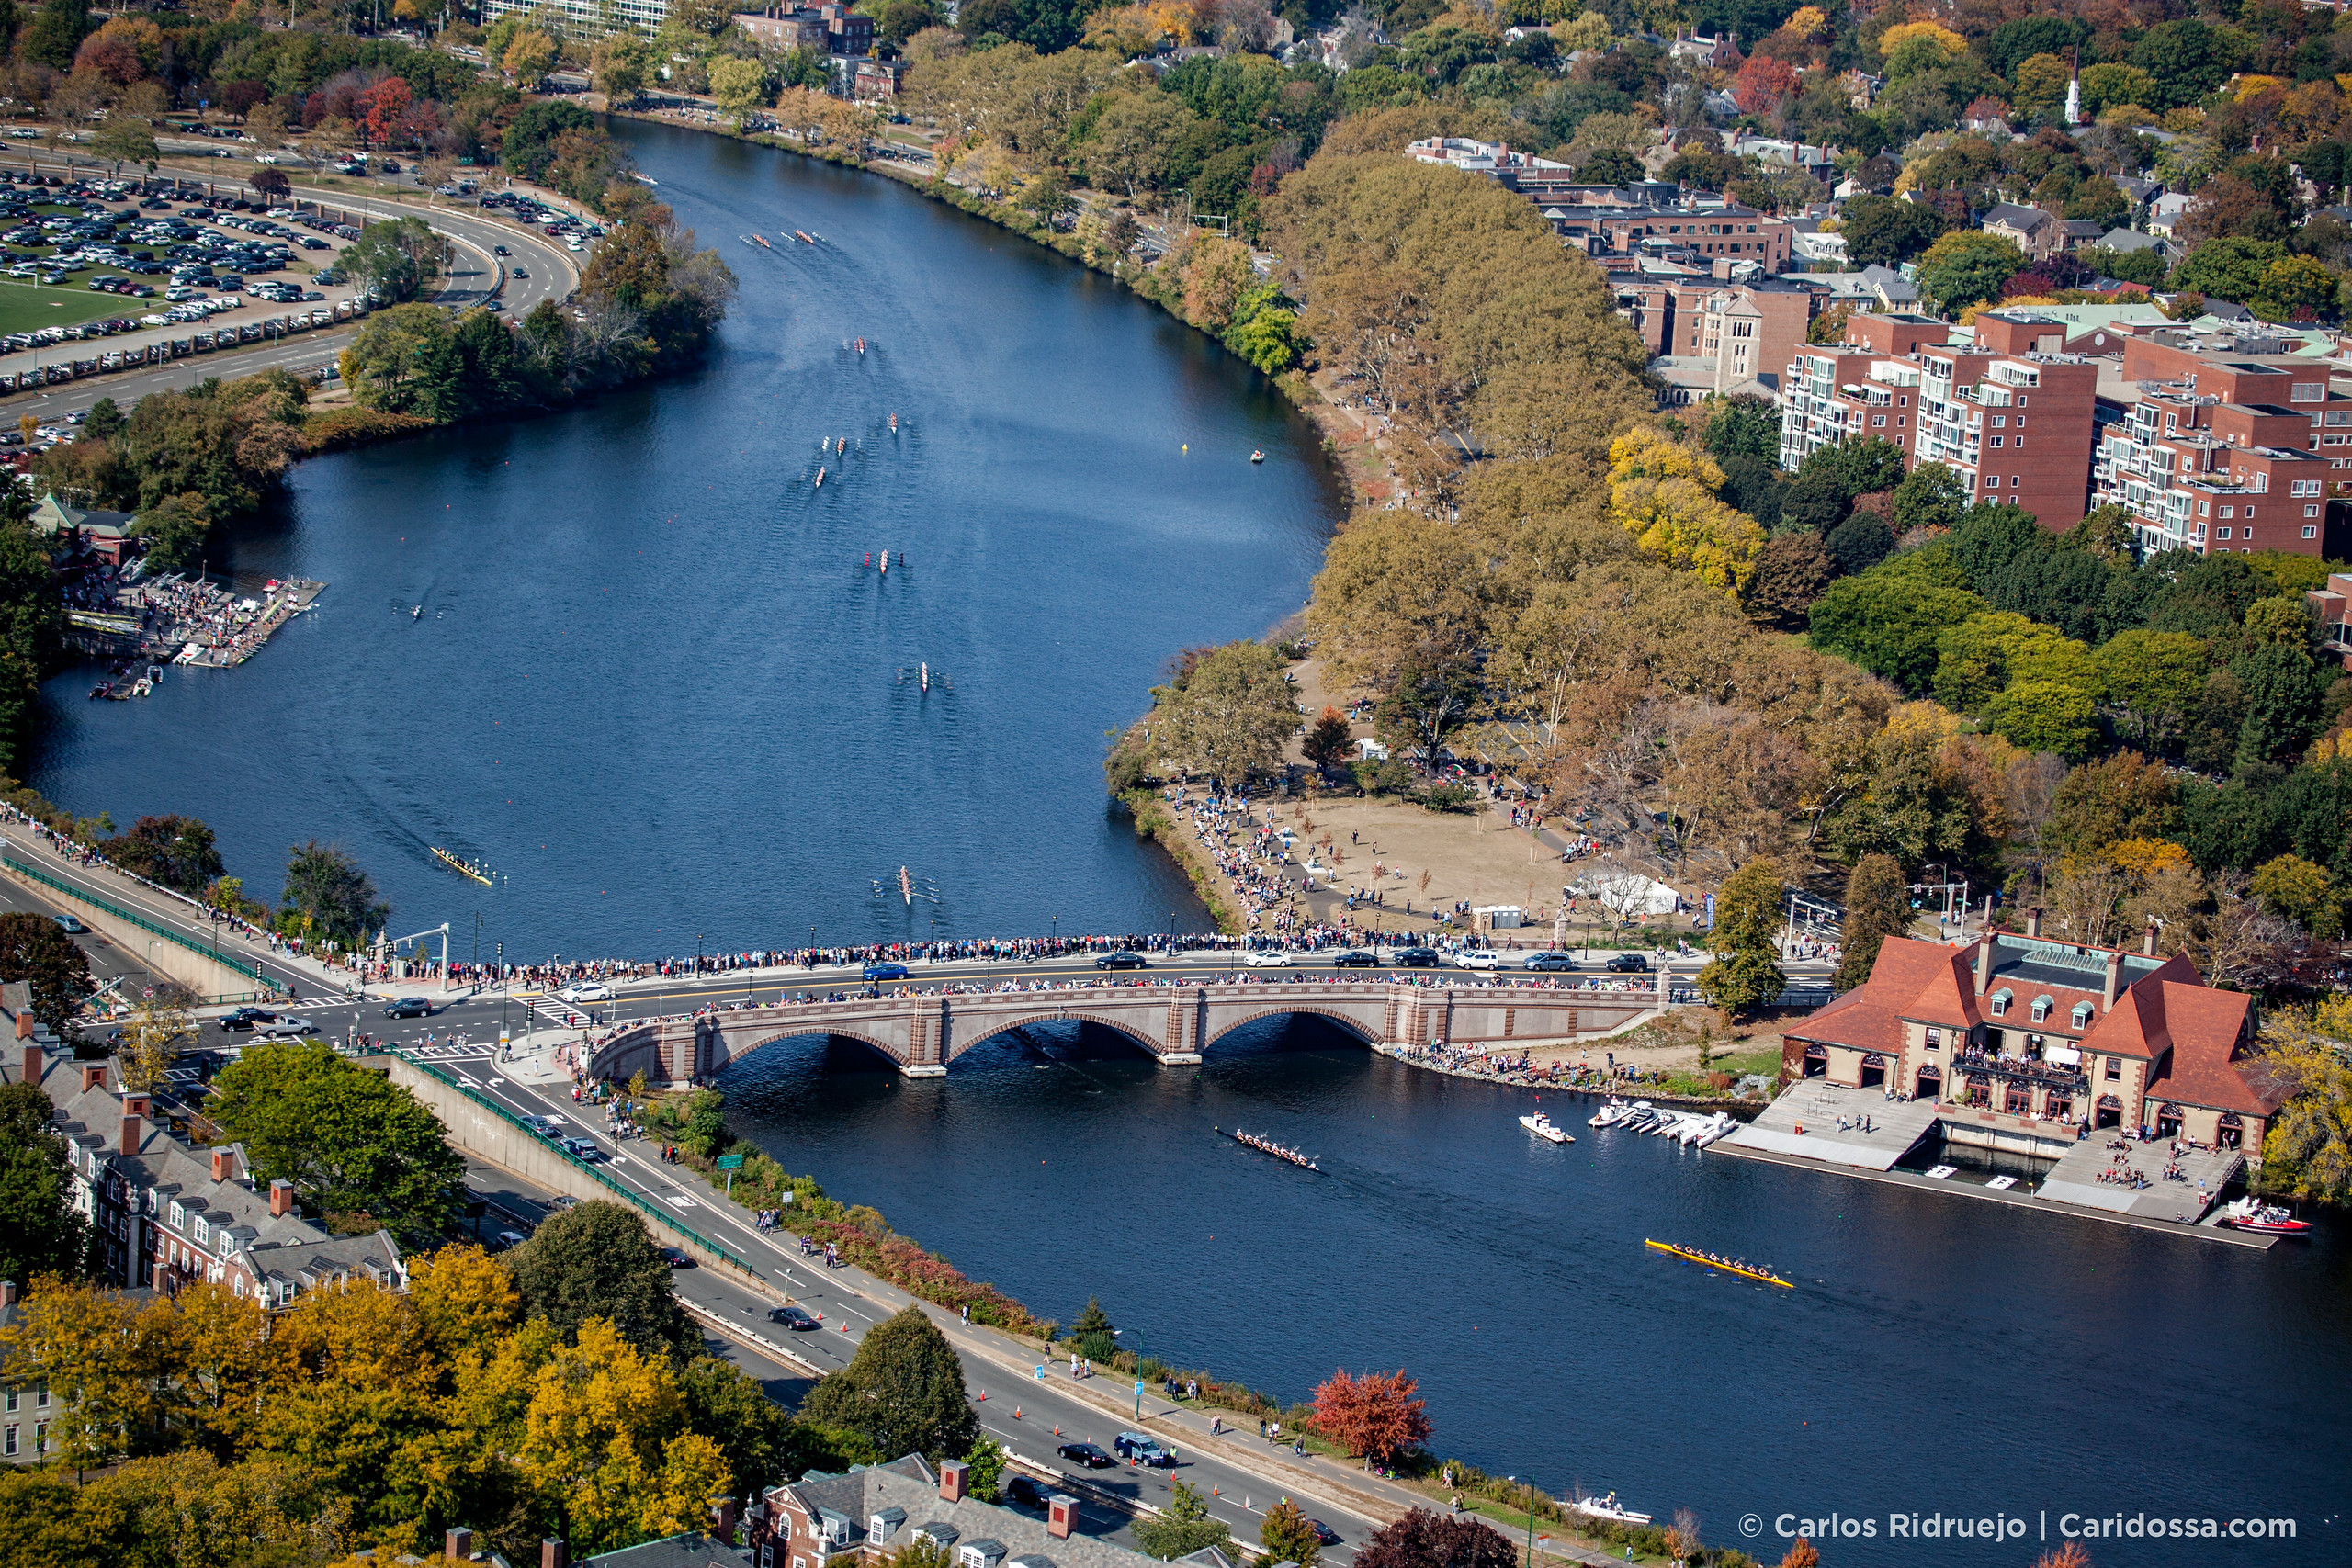 2019 Head Of The Charles Regatta will Generate Over $88 Million in Spending Impact for the Greater Boston Economy